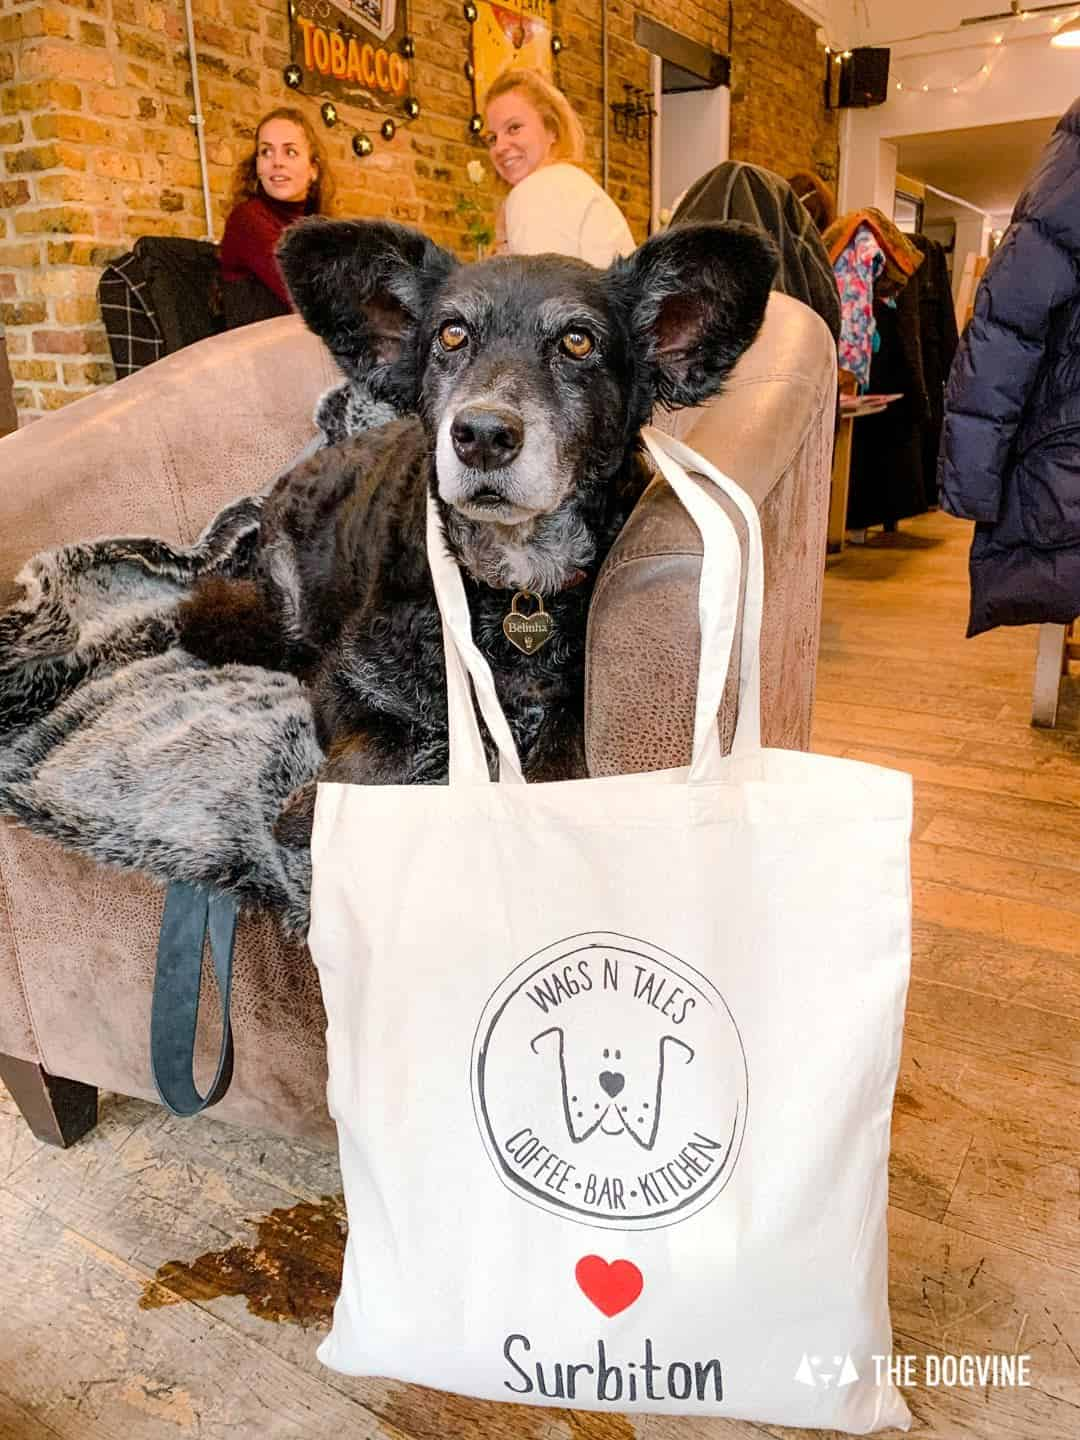 Dogs Love Wags N Tales Surbiton - Dog-friendly Pub Awards 34